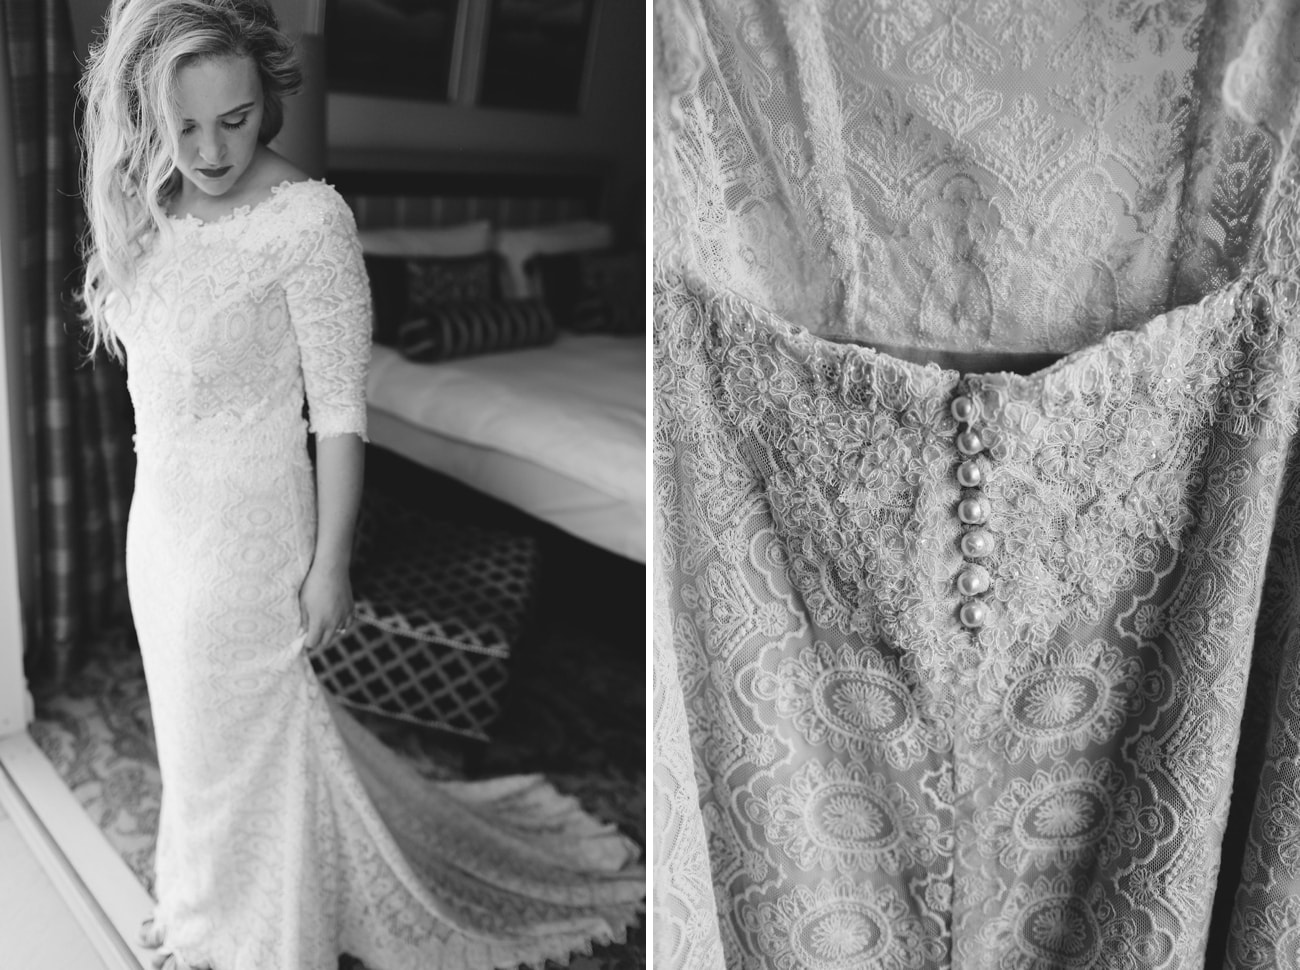 Long Sleeve Lace Wedding Dress | Vintage Chic City Wedding at the Cape Town Club | Credit: Duane Smith